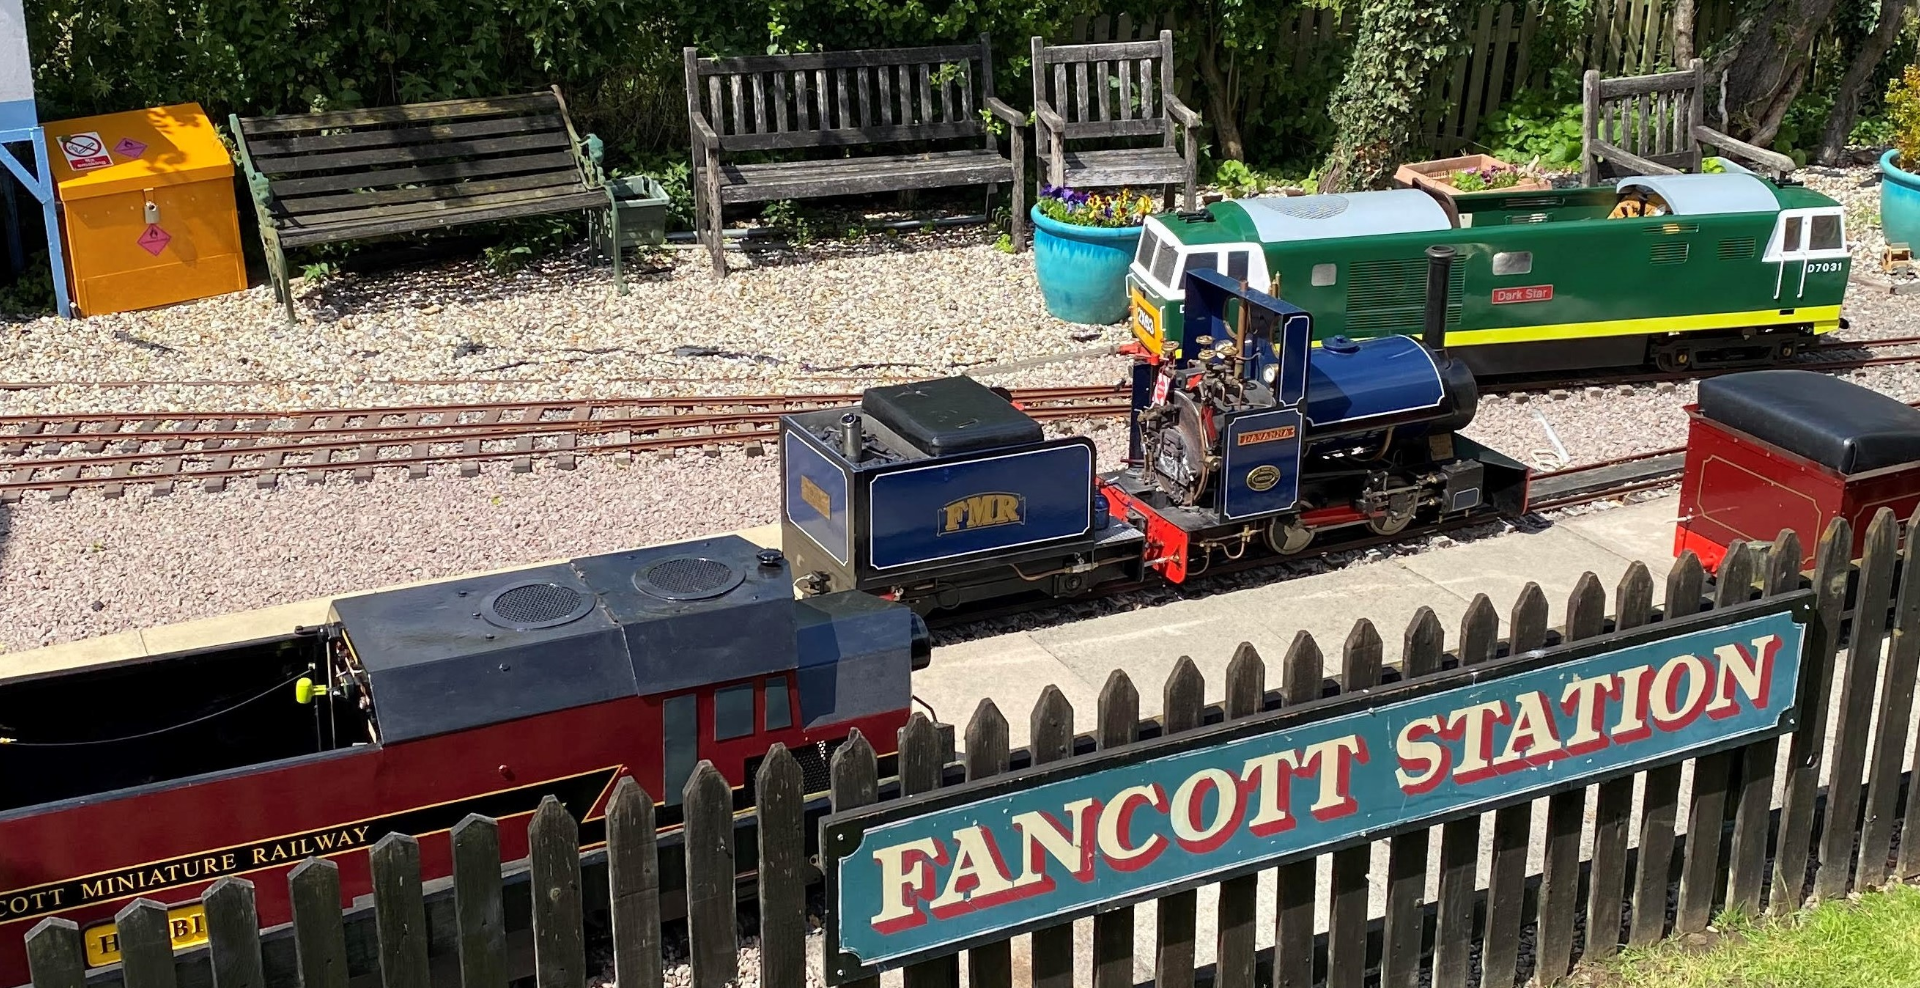 Fancott Miniature Railway